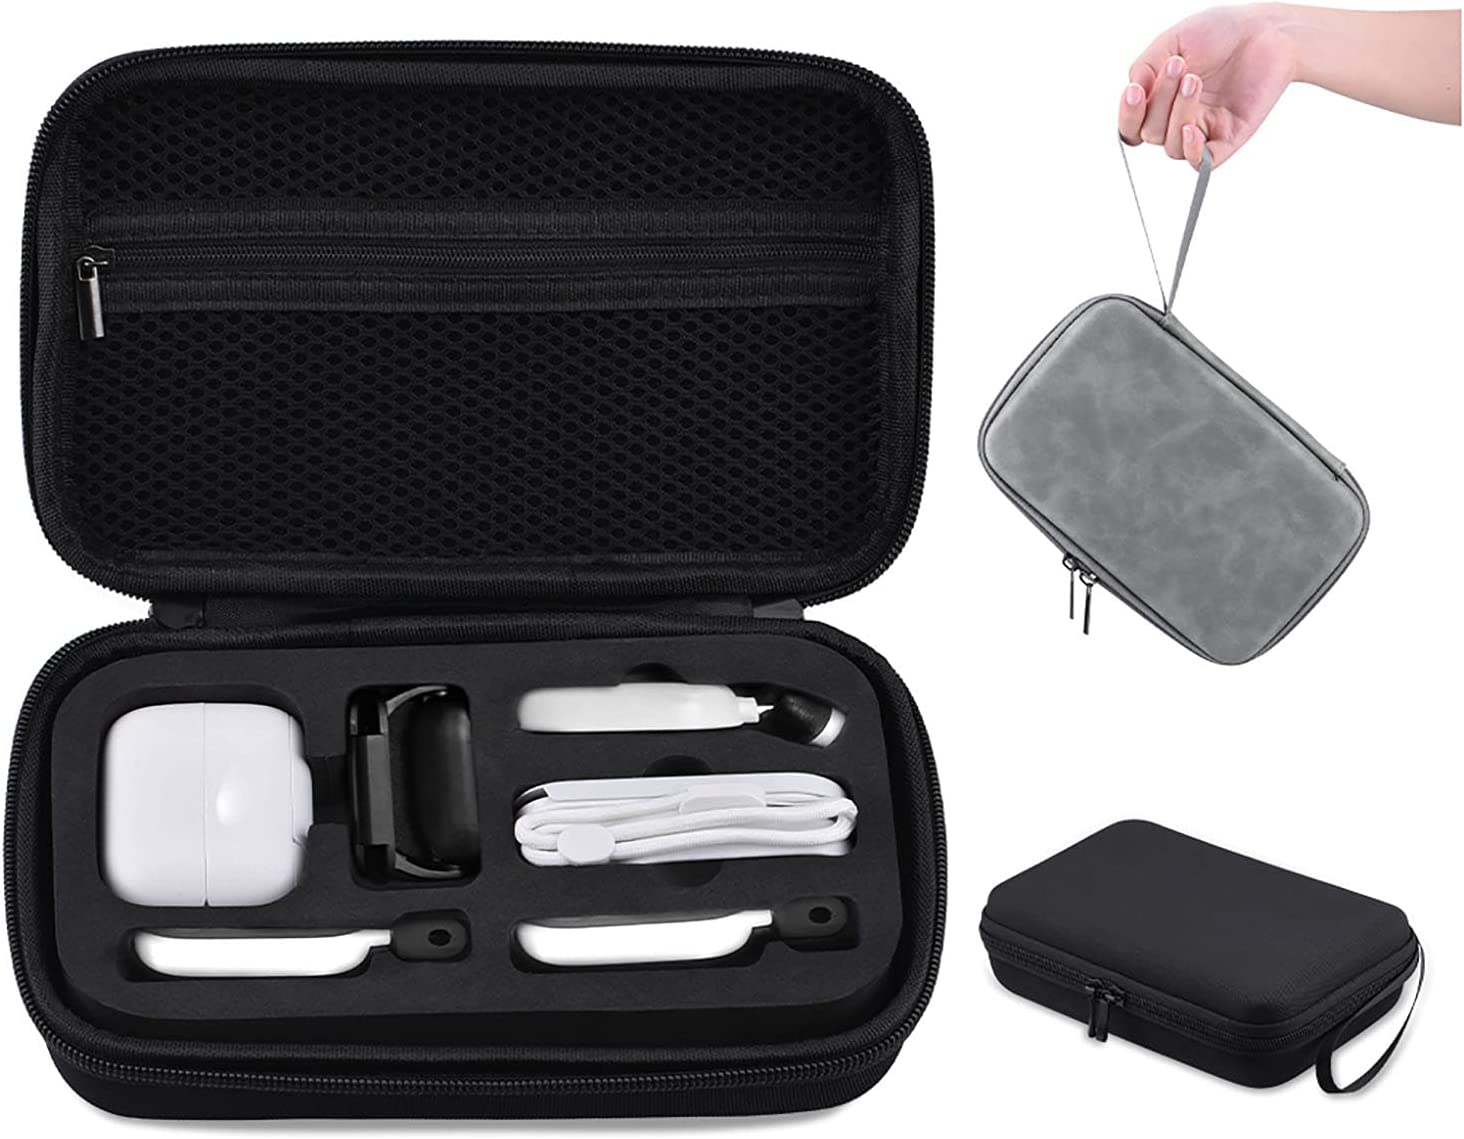 JKRED Max 63% OFF Carrying Case for Insta360 GO 2 Action Storag Camera Small New product!!